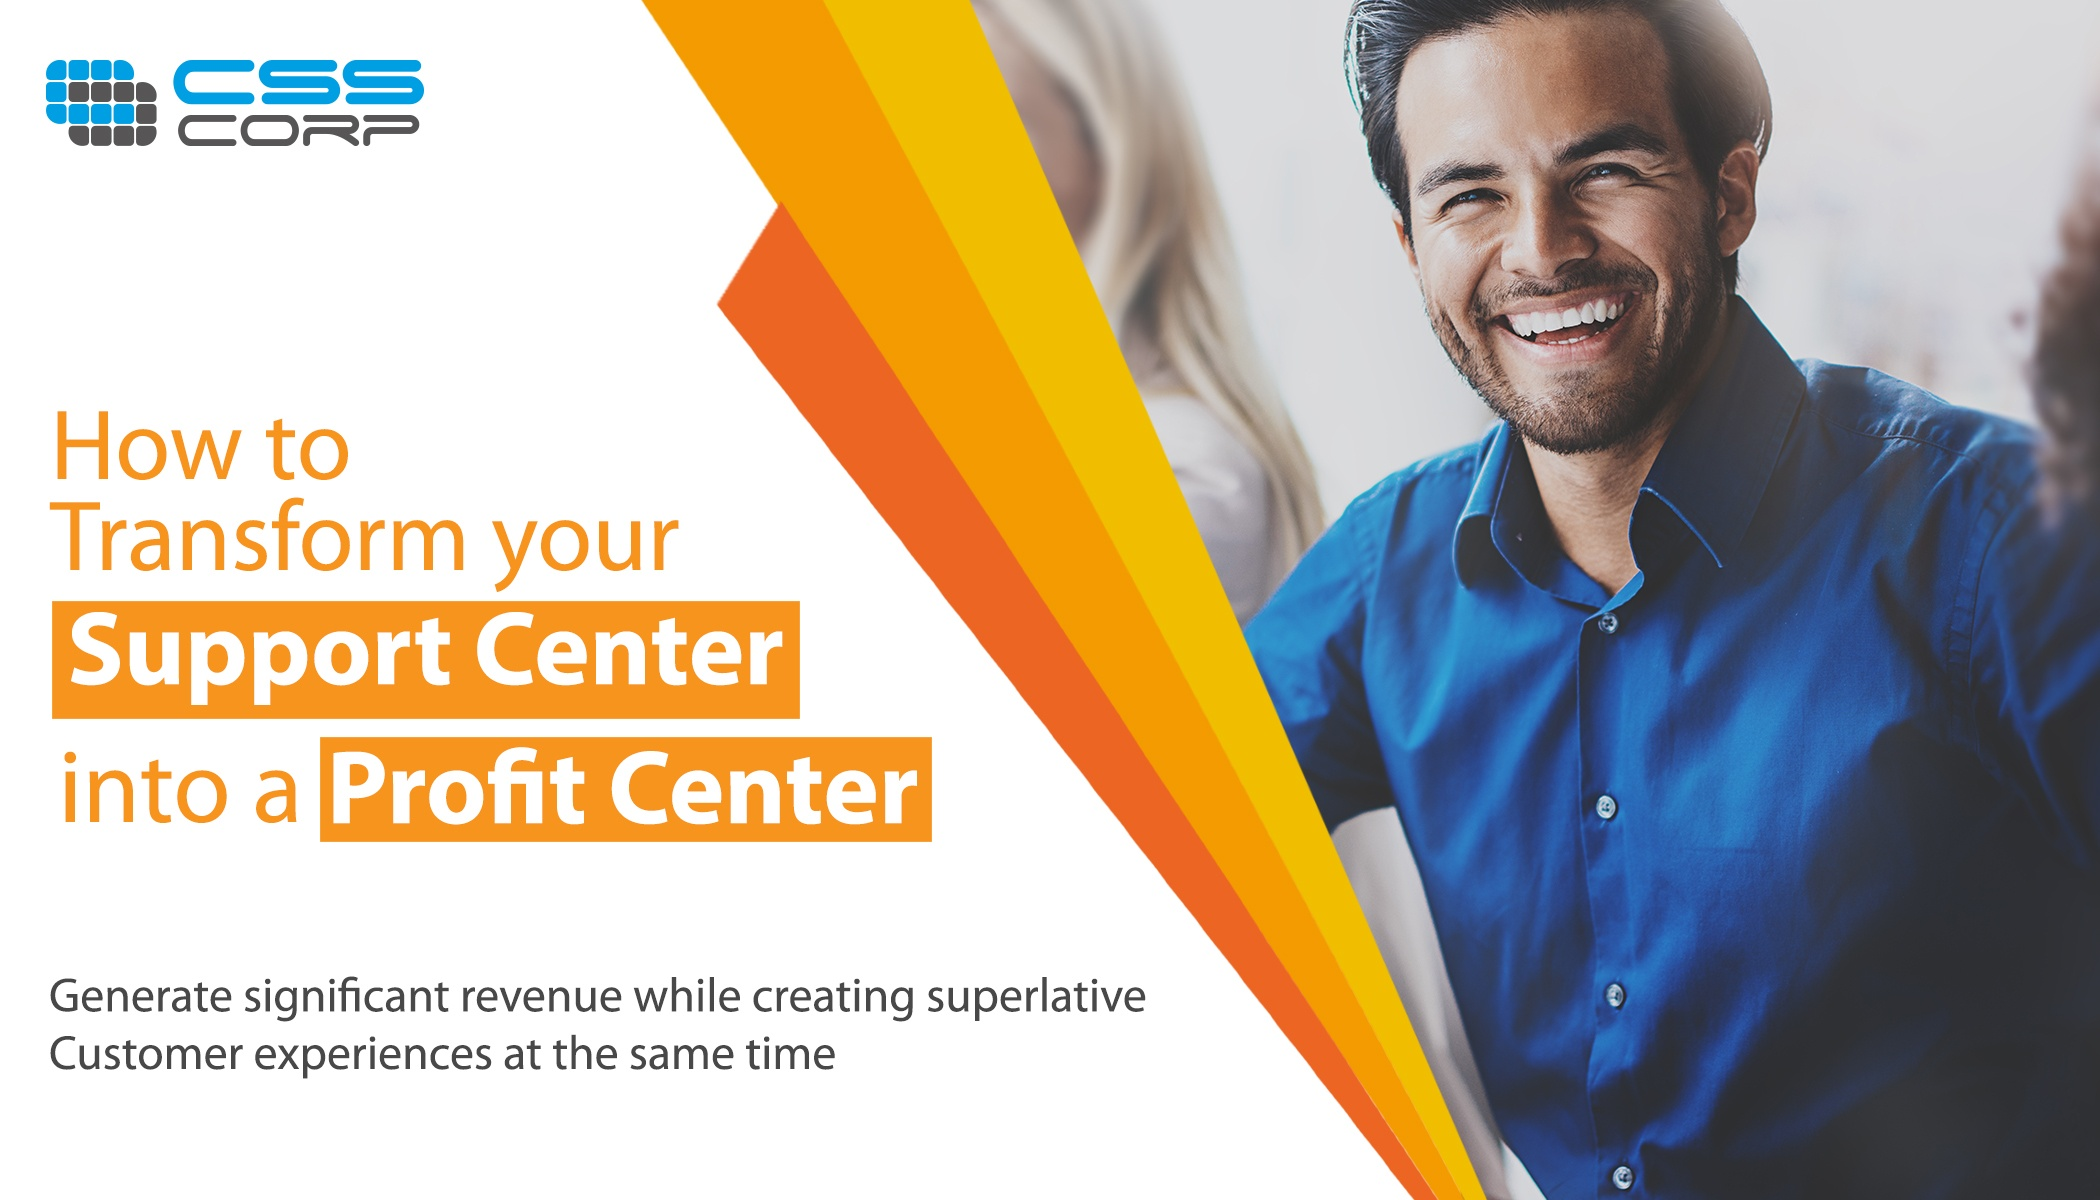 Cost Center to Profit Center